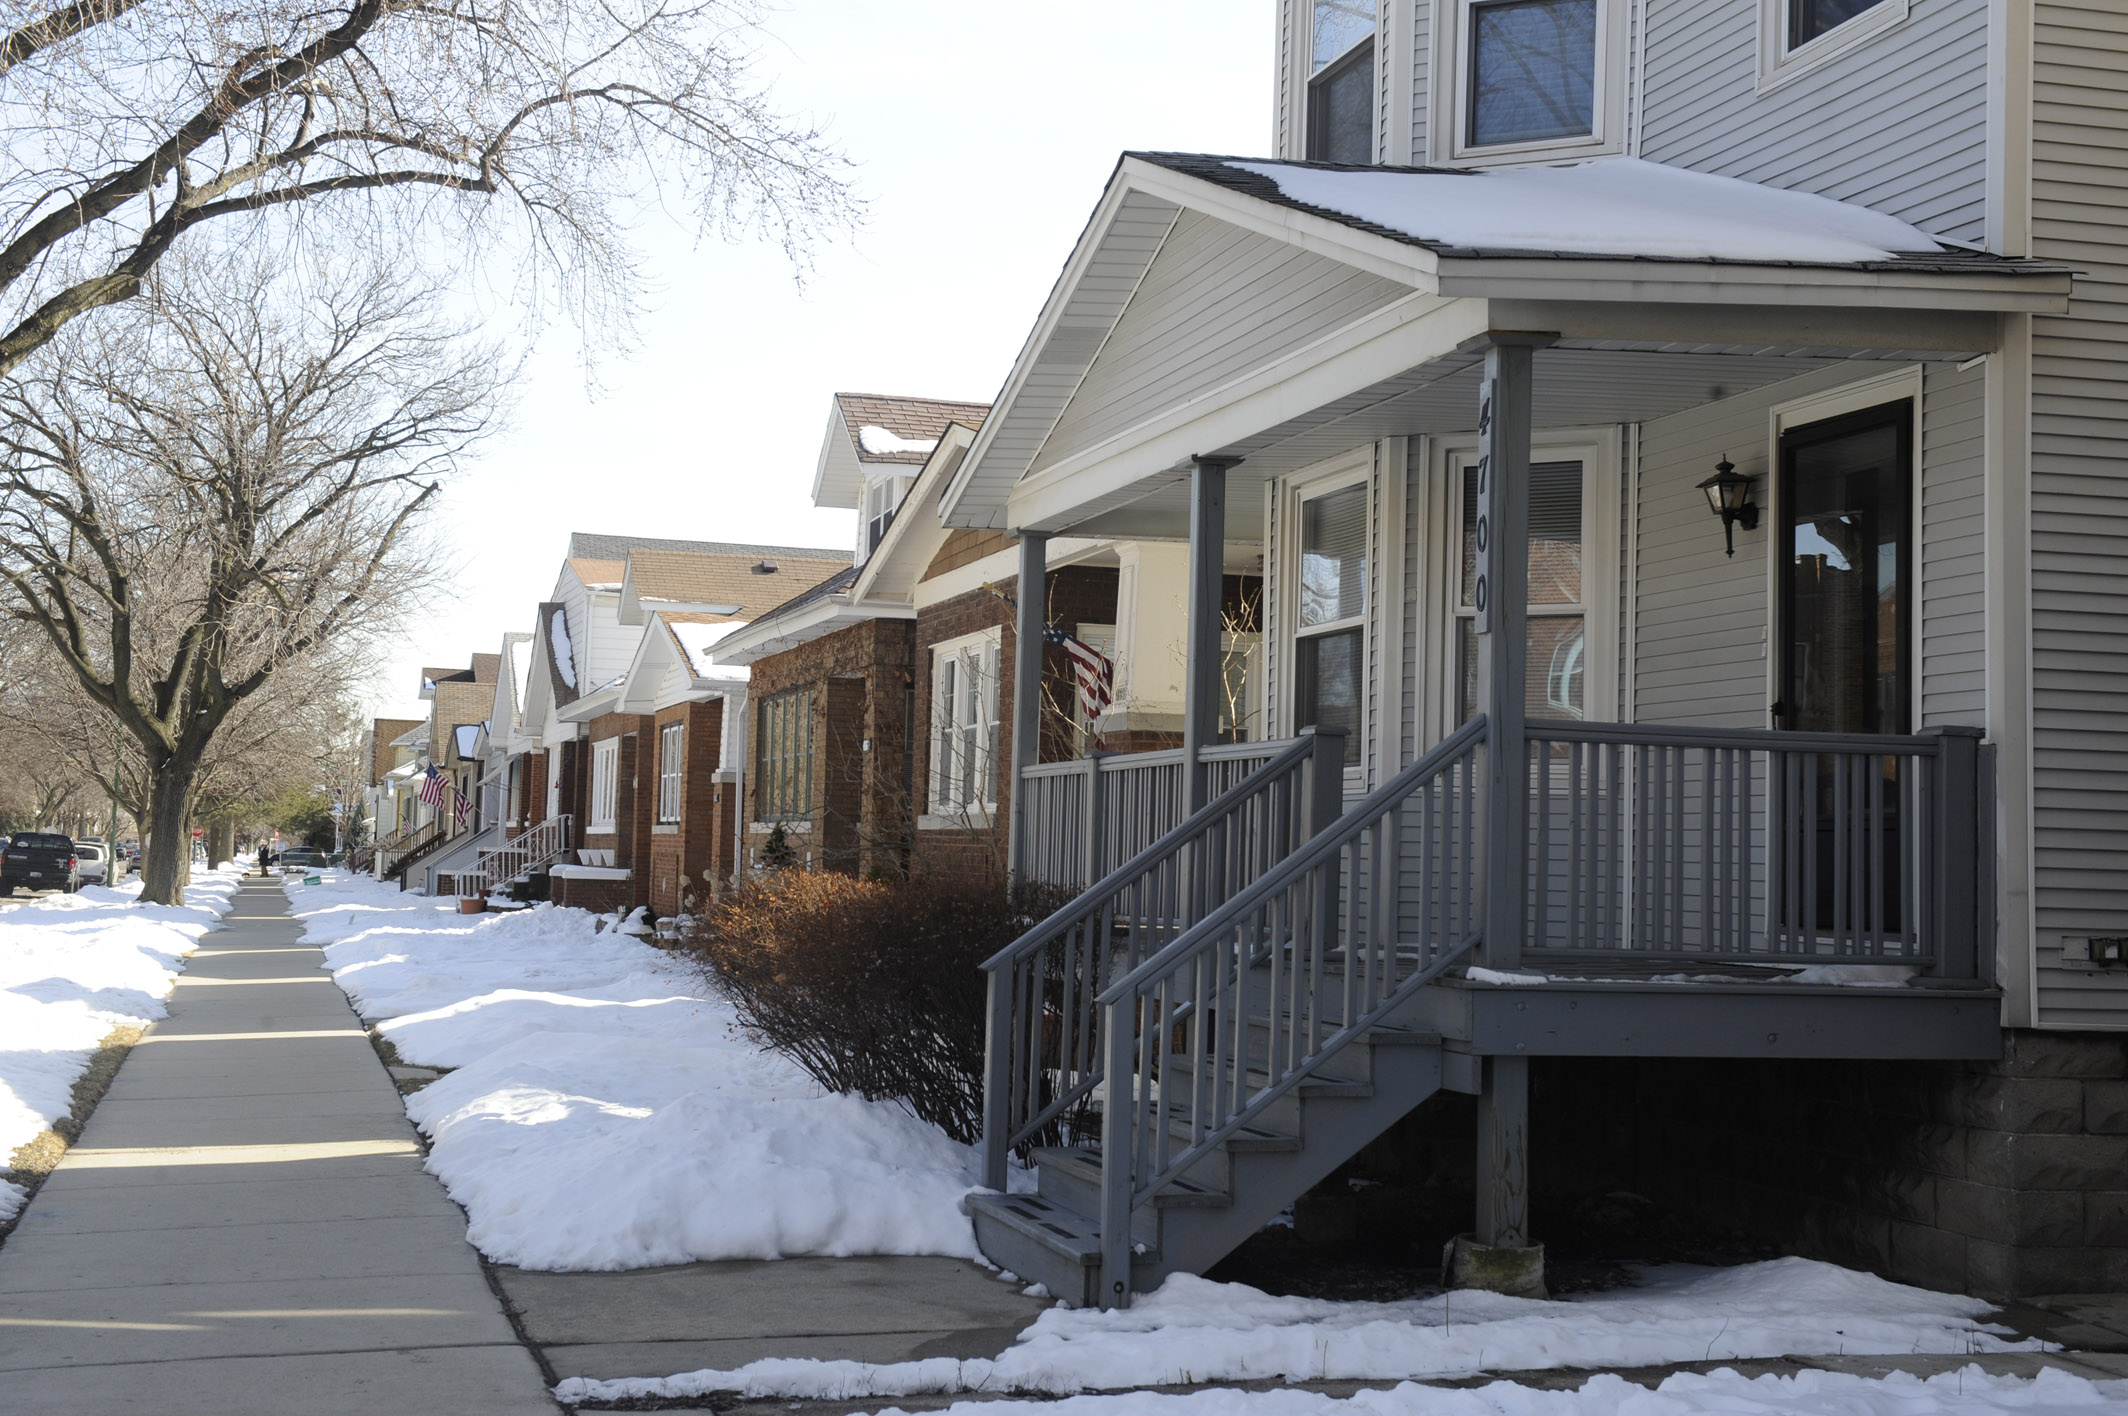 A proposed change in Chicago's zoning code, writes a Sun-Times reader, would open the door for owners or developers to buy single family homes, two-flats and three-flats and add more units, to the detriment of many neighborhoods.